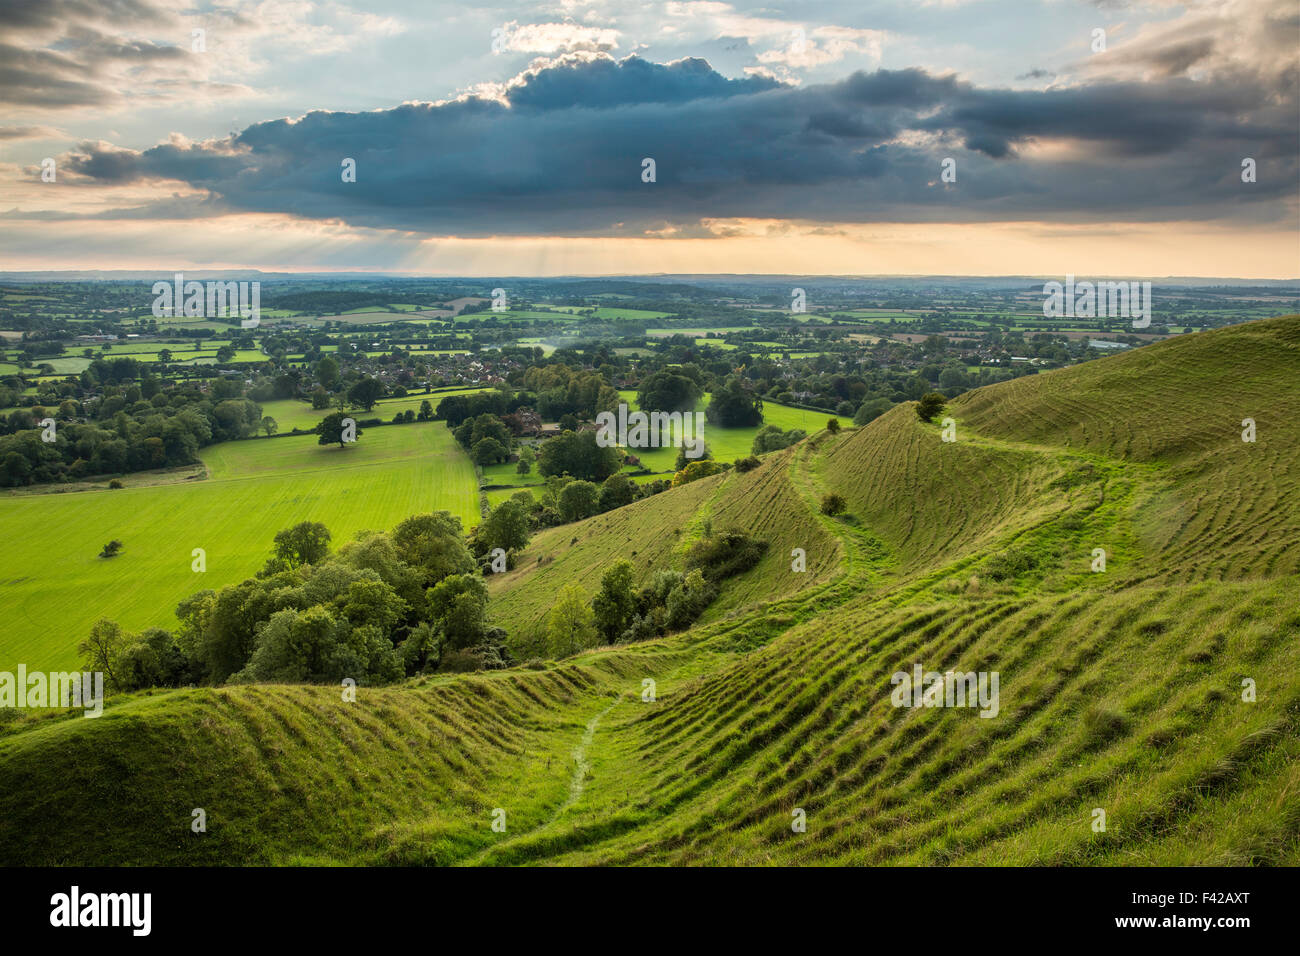 the ramparts of the prehistoric hill fort on Hambledon Hill above the Blackmore Vale, Dorset, England, UK - Stock Image